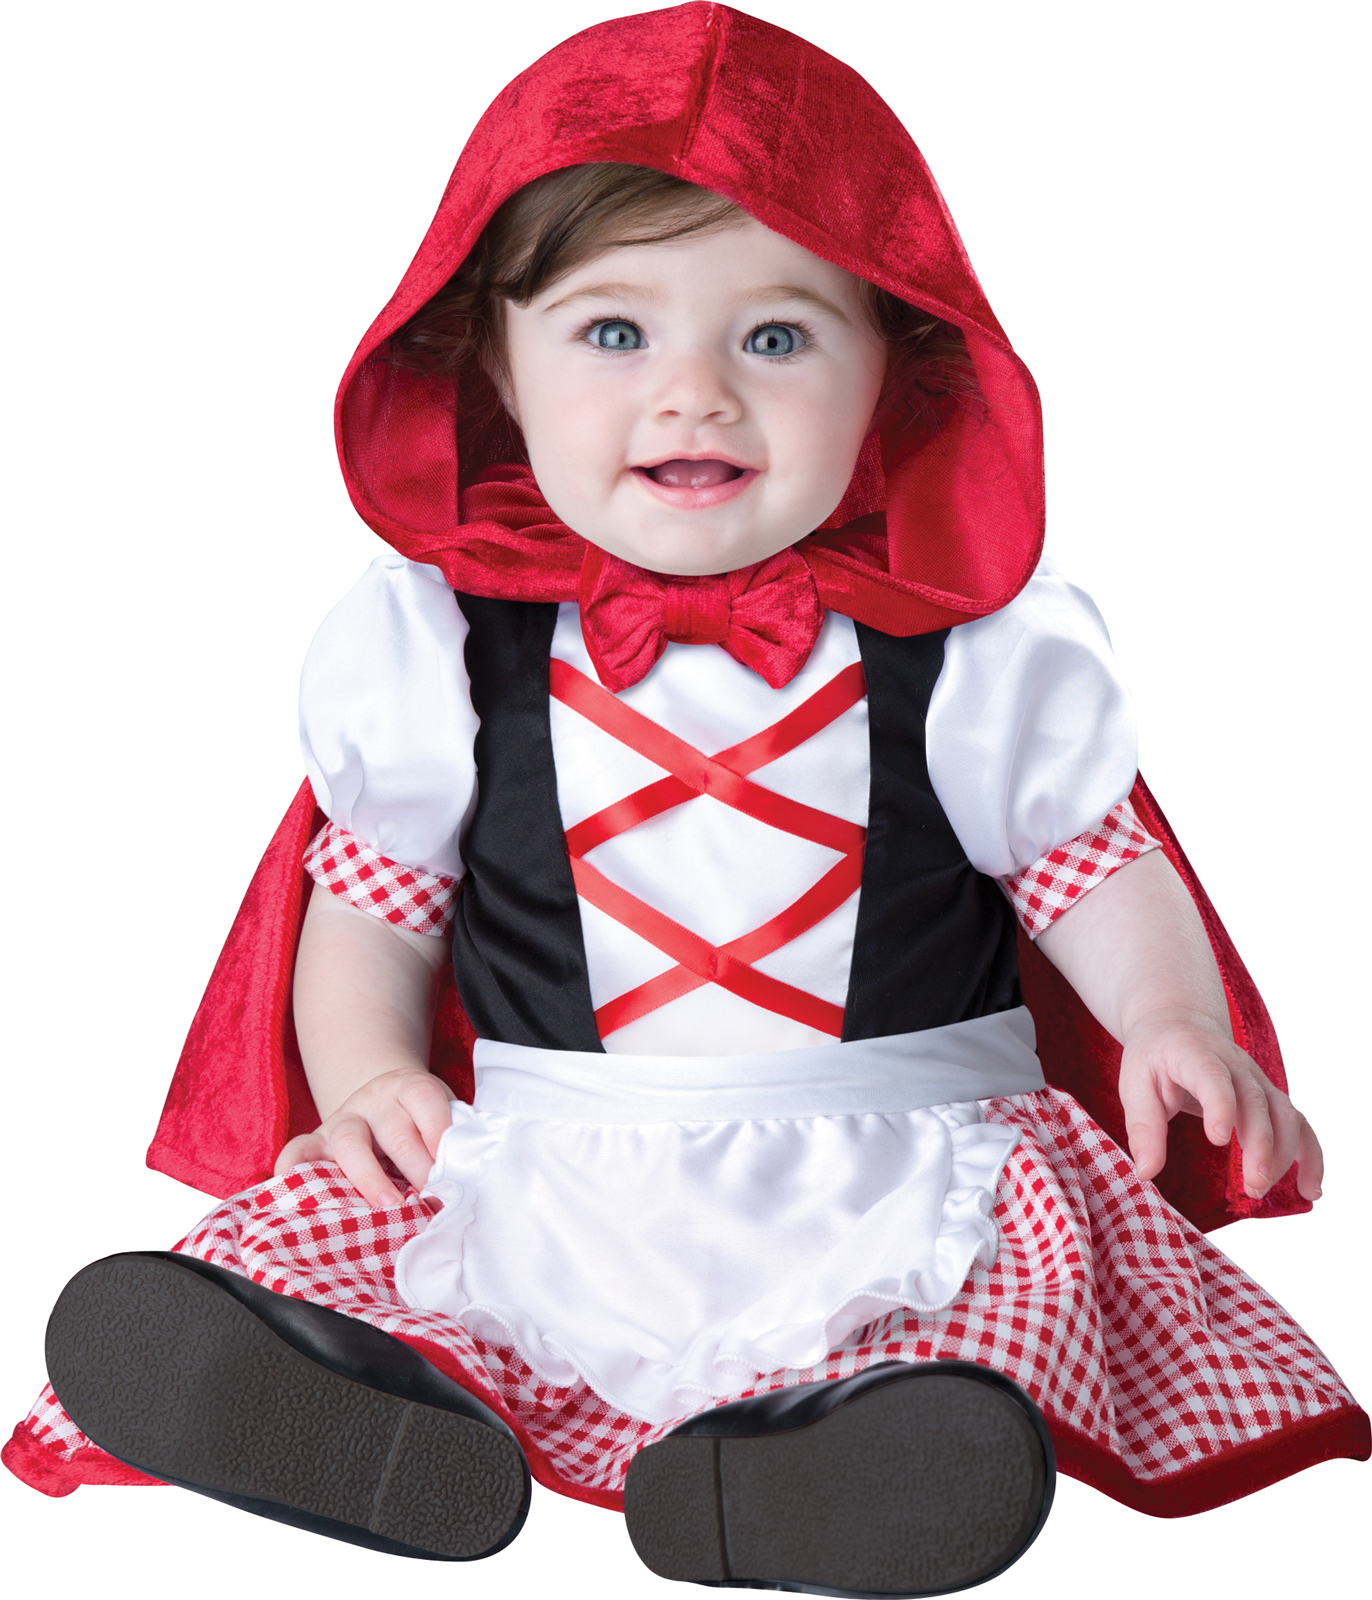 little baby red riding hood costume